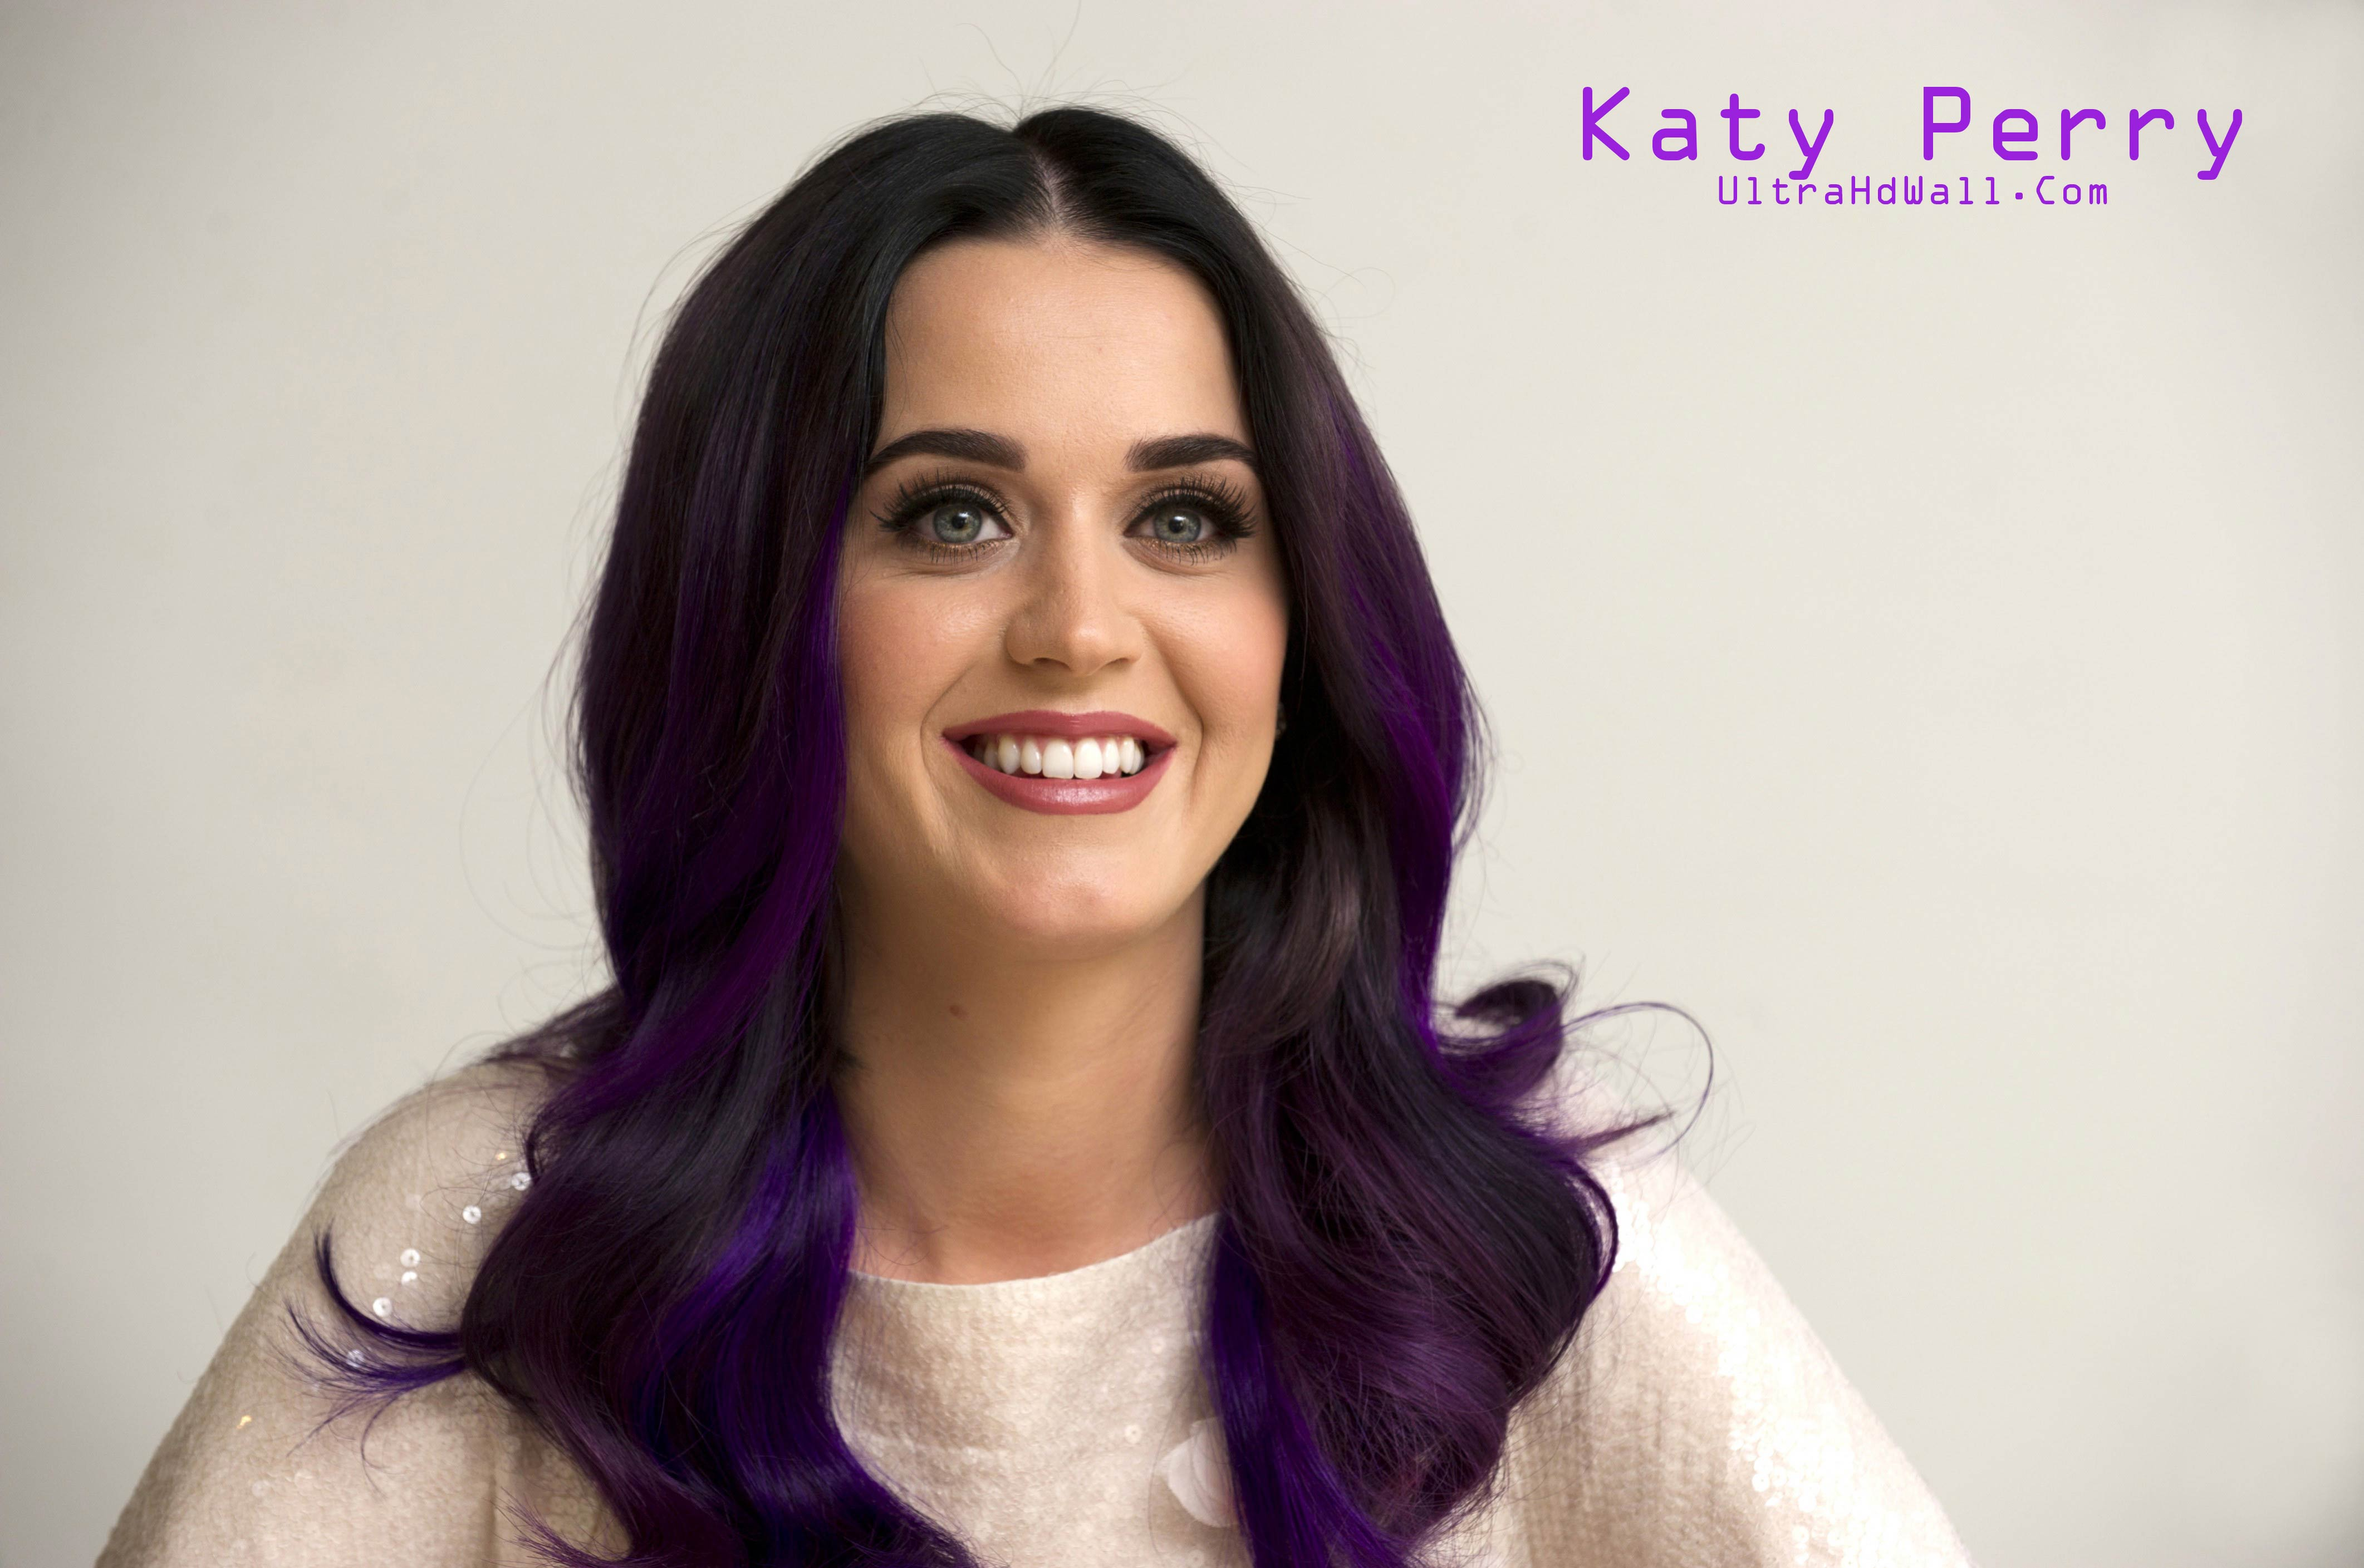 katy perry wallpapers high quality download free